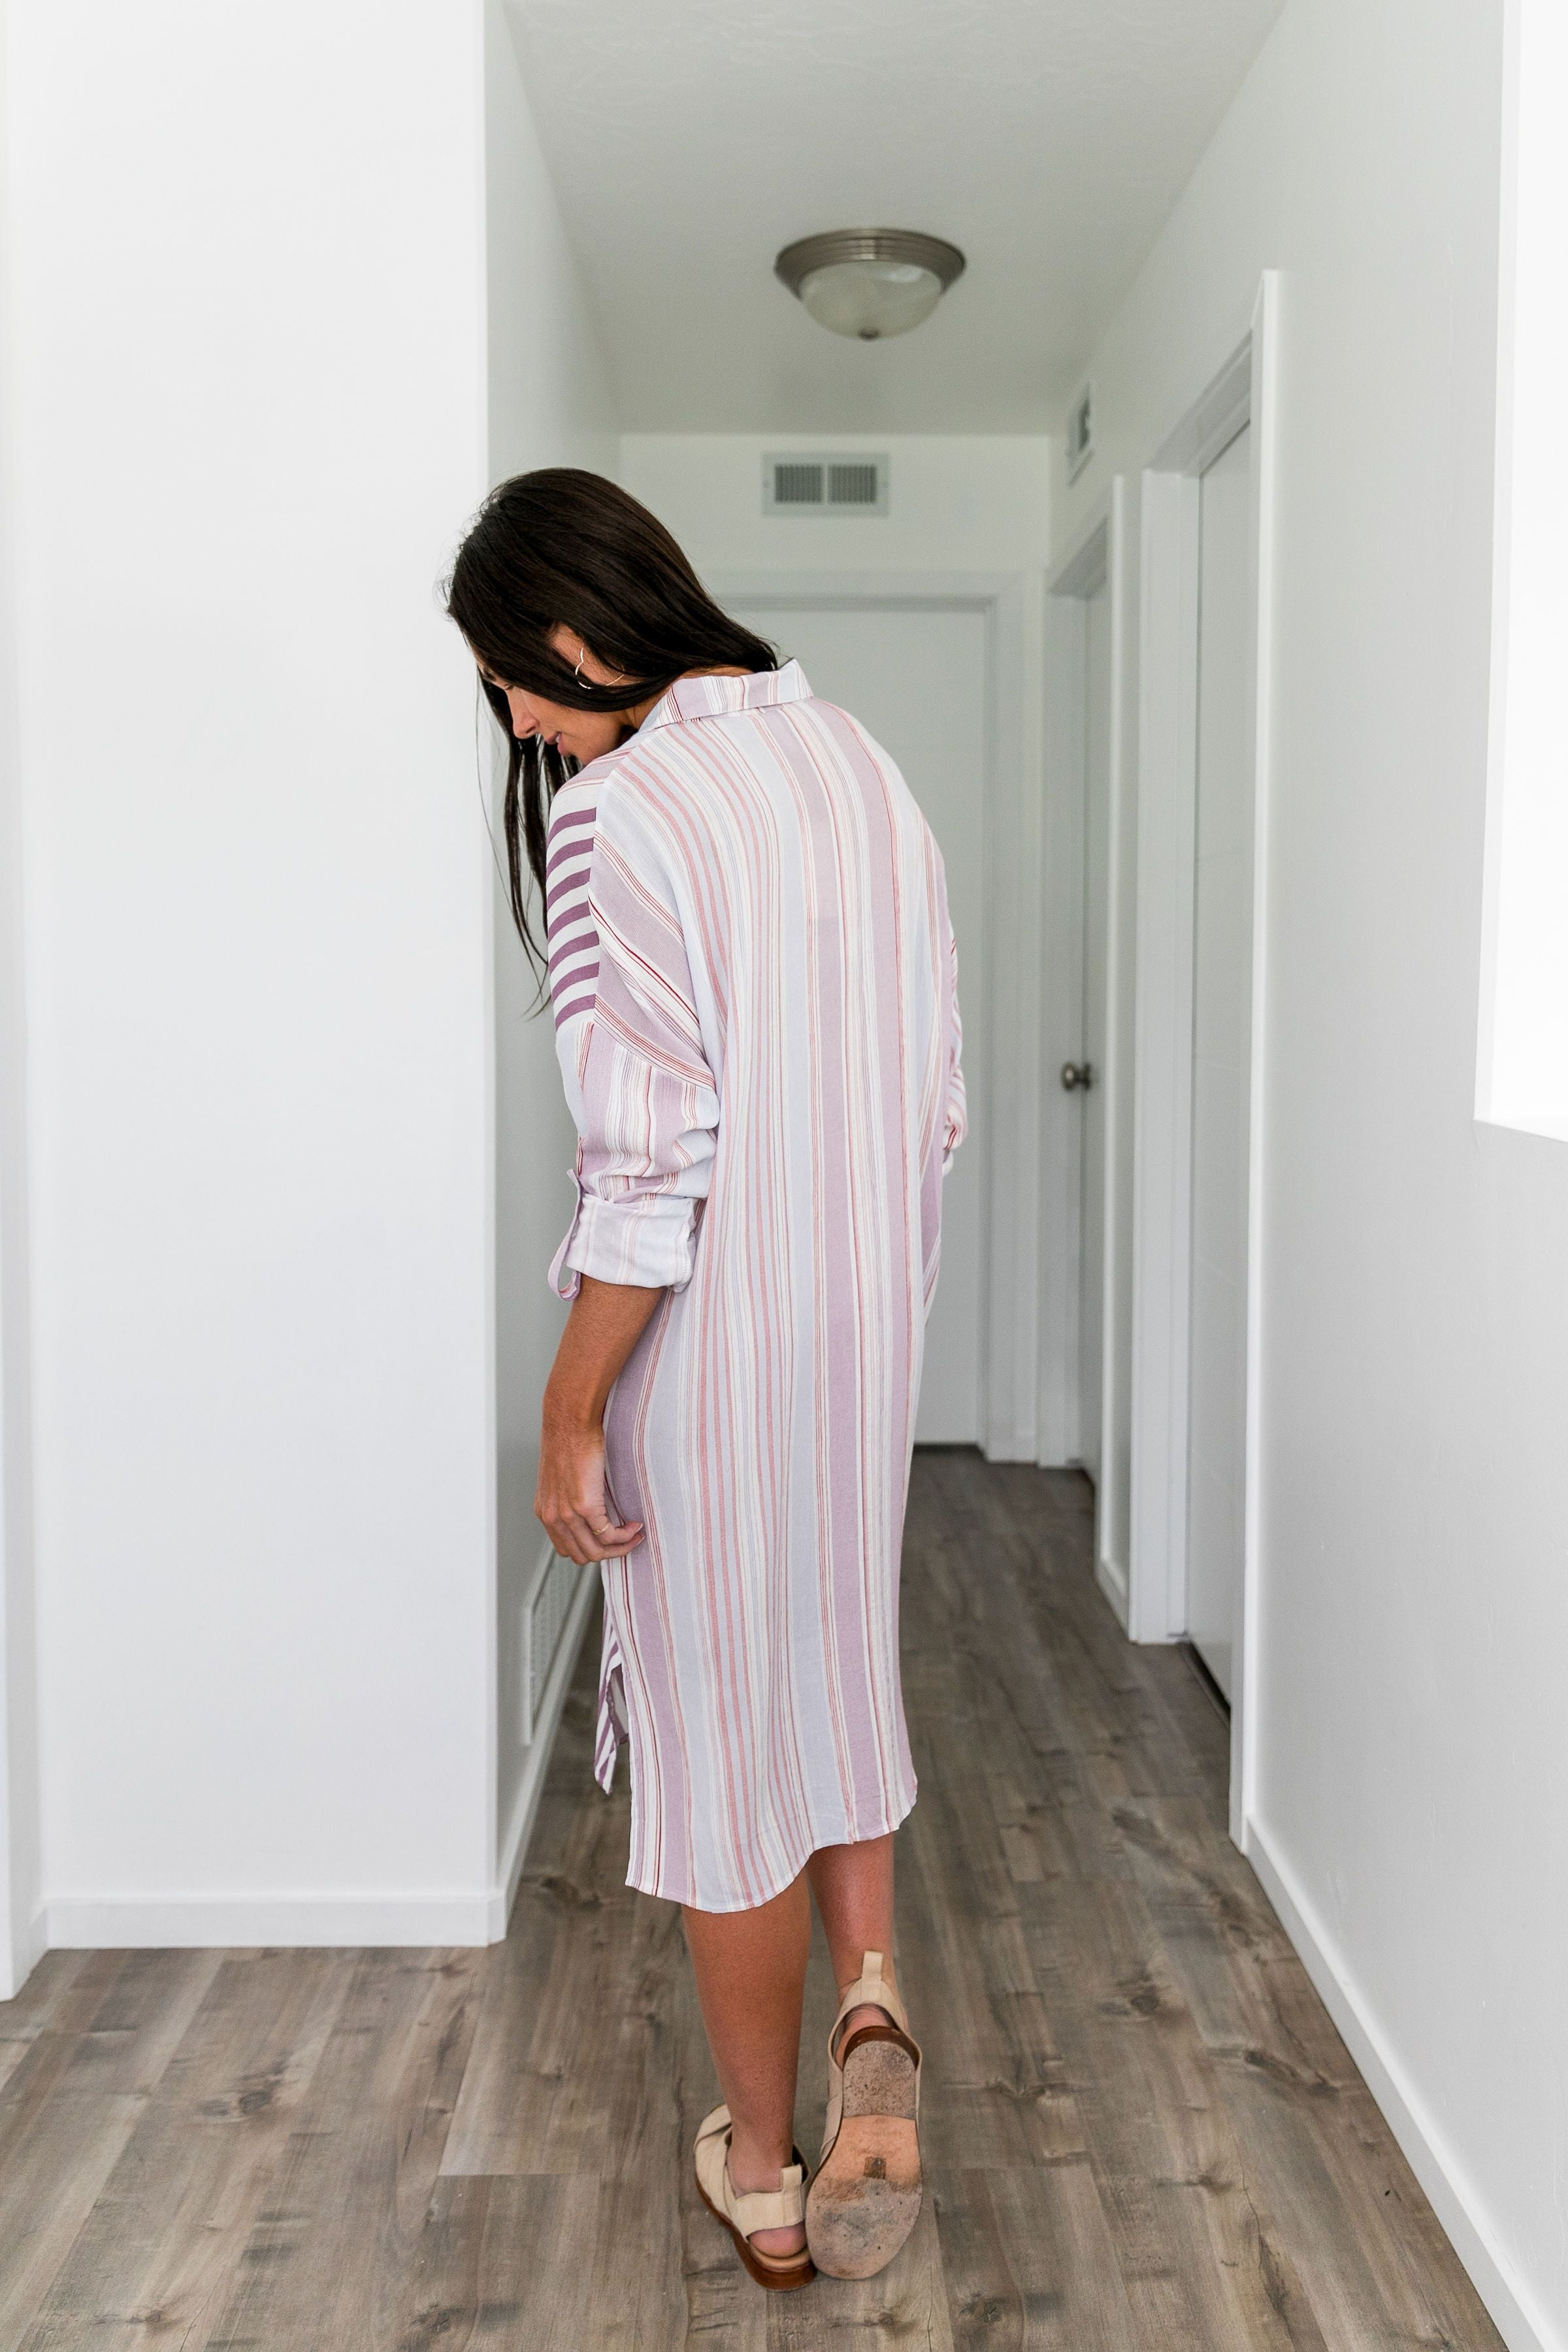 Risky Business Striped Dress - ALL SALES FINAL